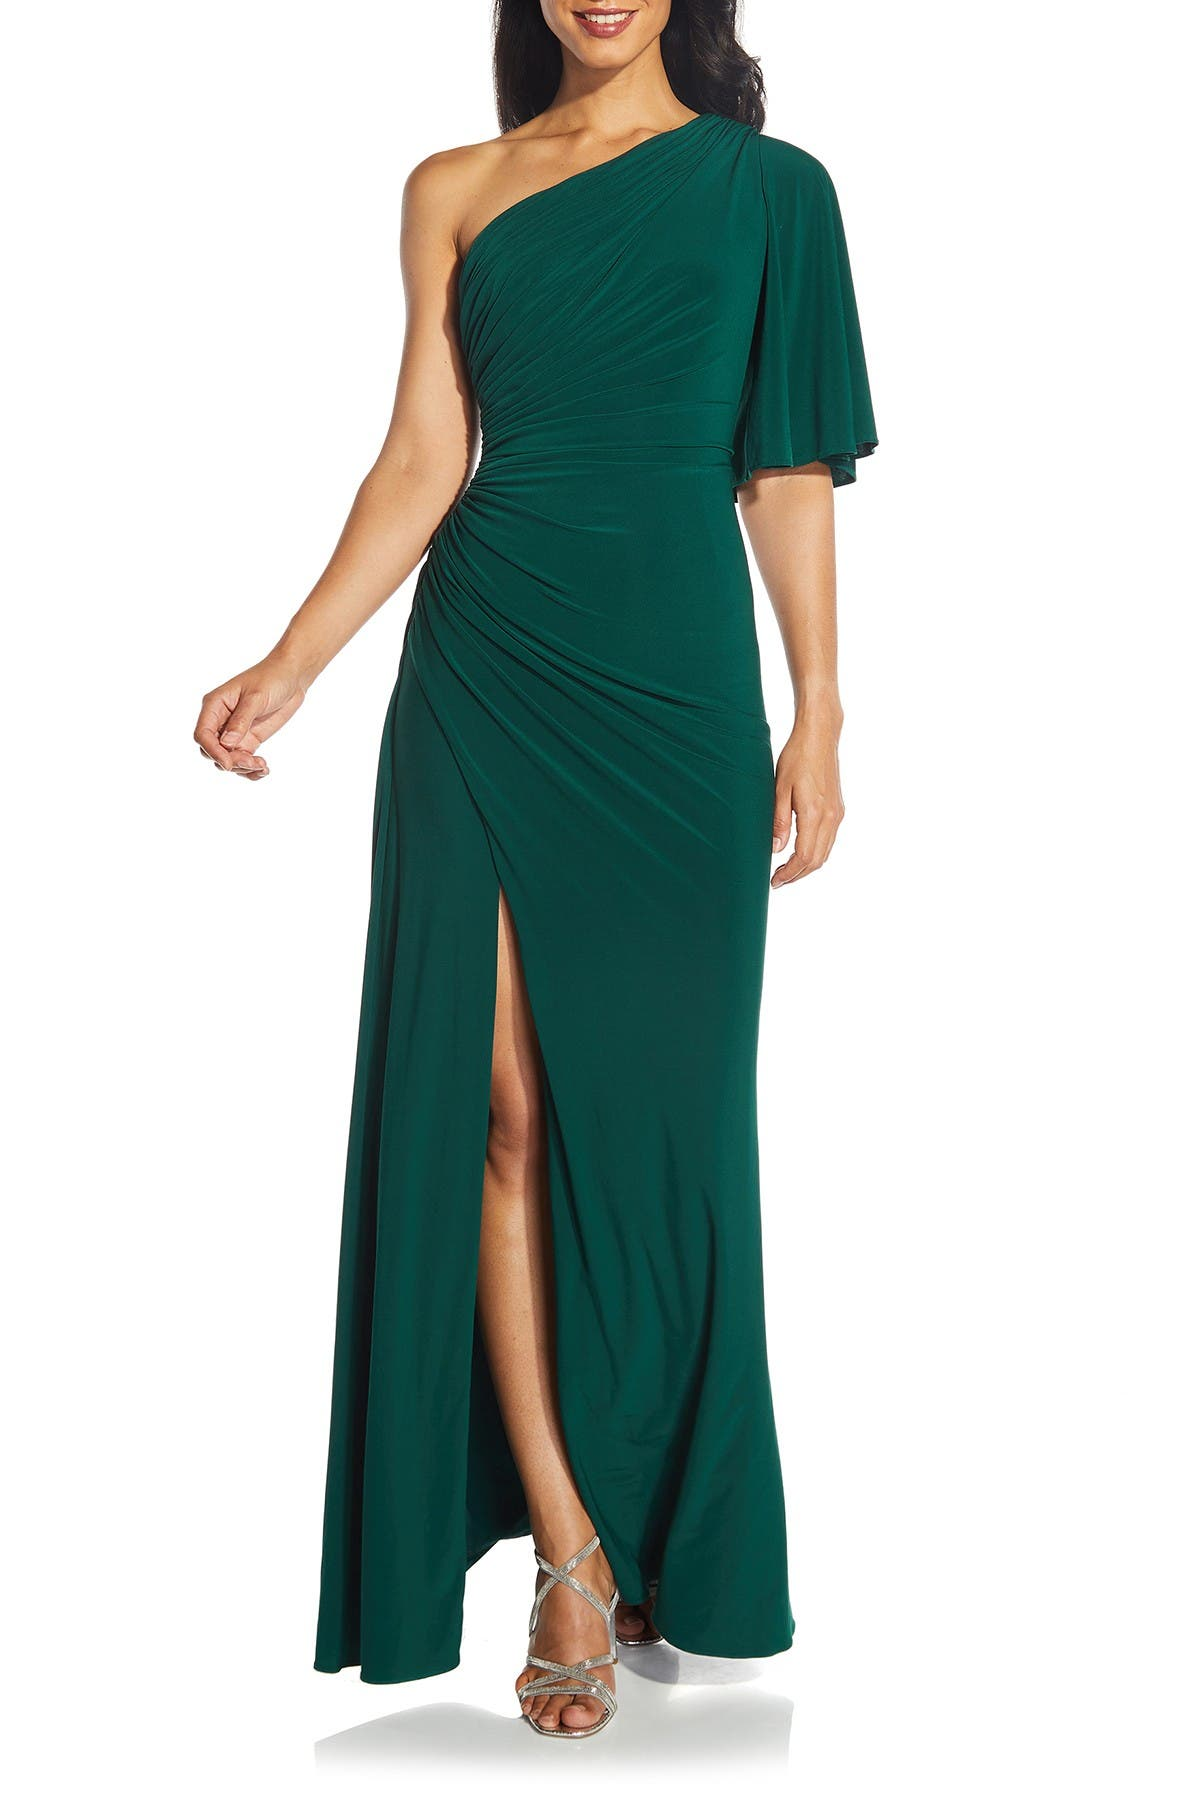 Image of Adrianna Papell One-Shoulder Jersey Dress